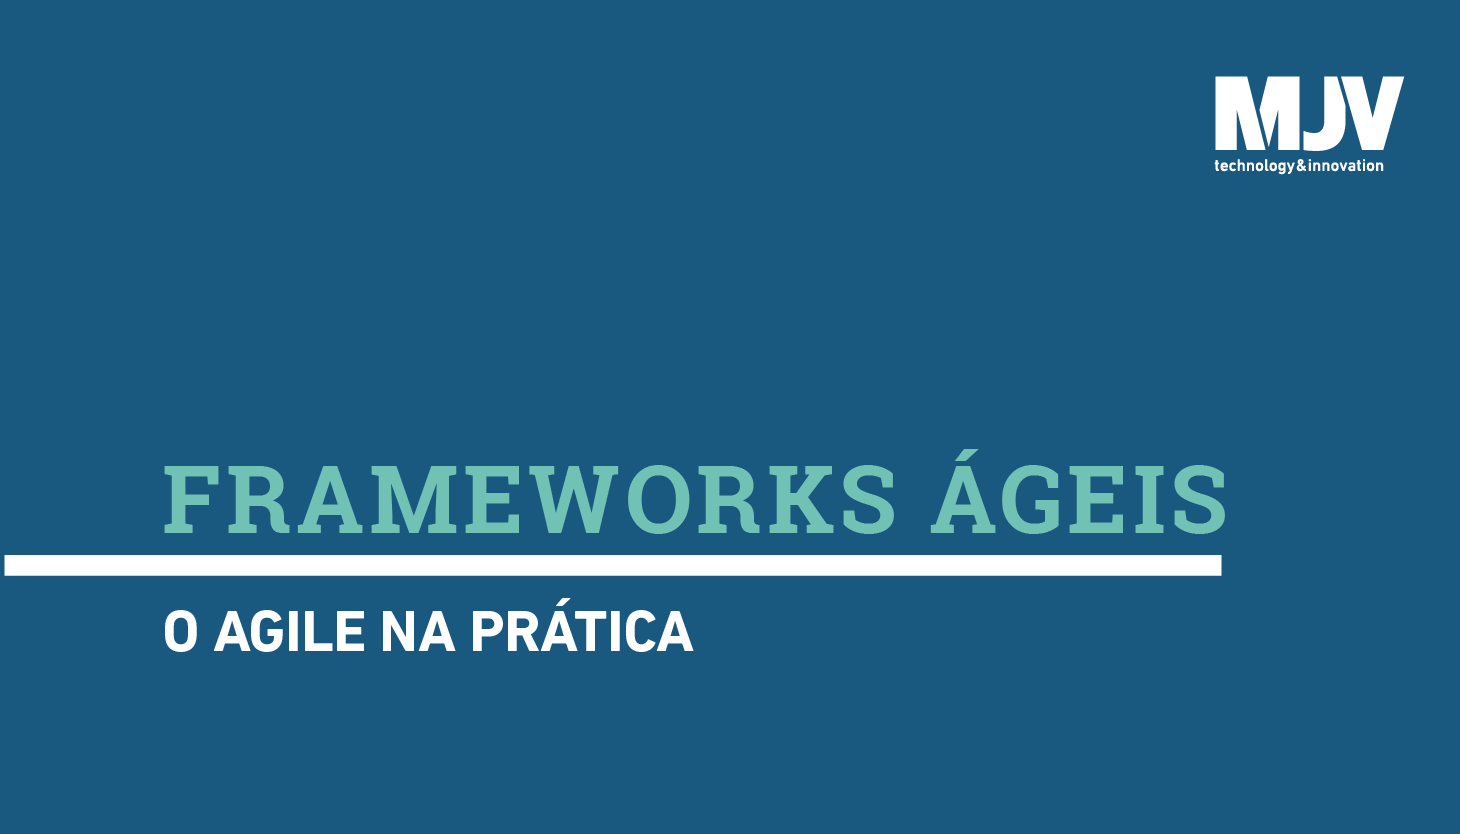 Frameworks_Ageis_CTAemail.png